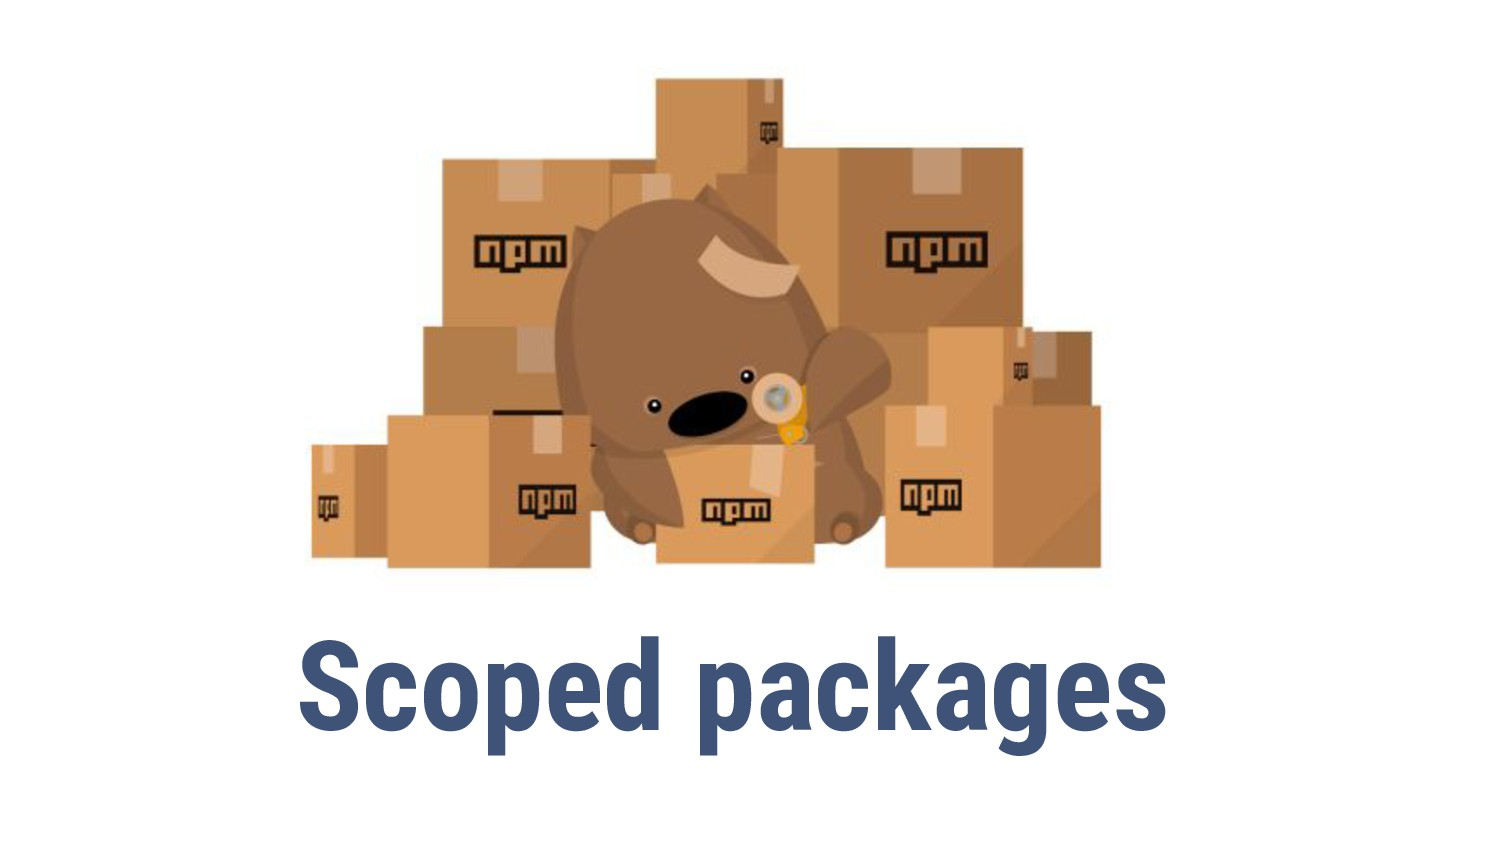 17 Scoped packages